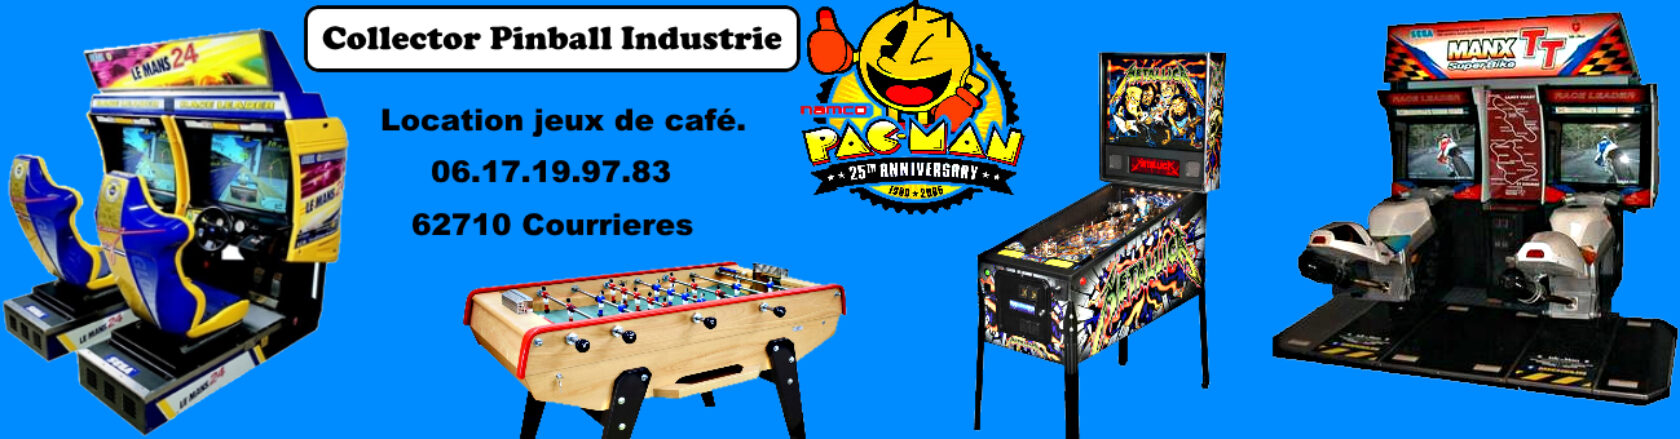 Collector Pinball industrie